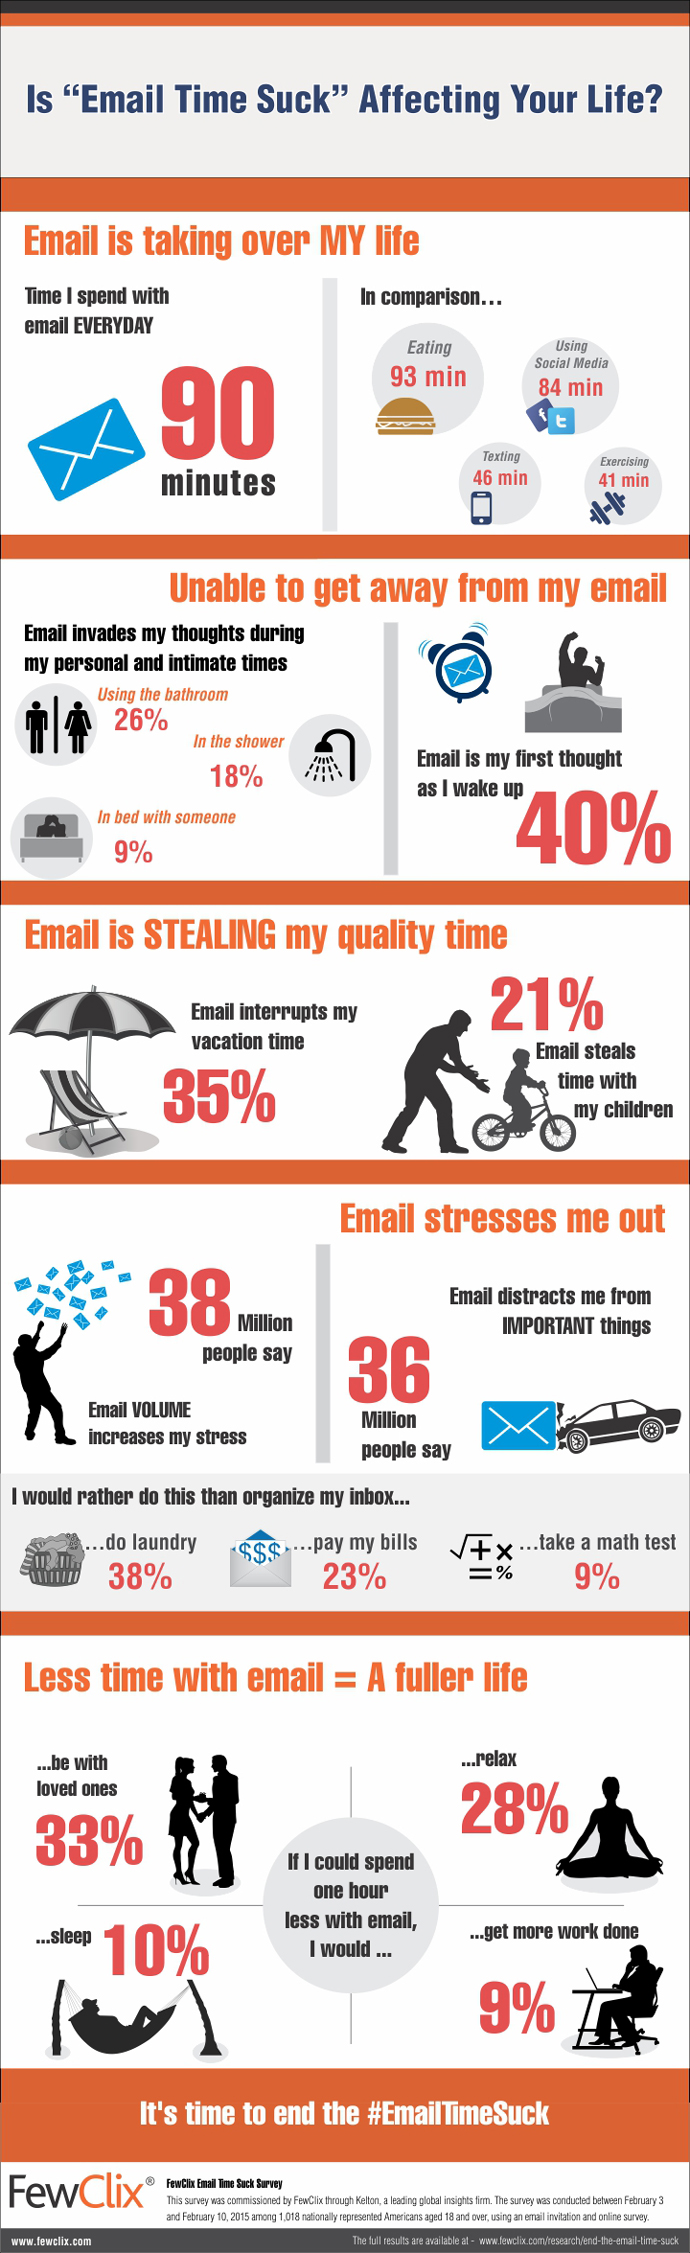 Infographic FewClix Email Time Suck Survey